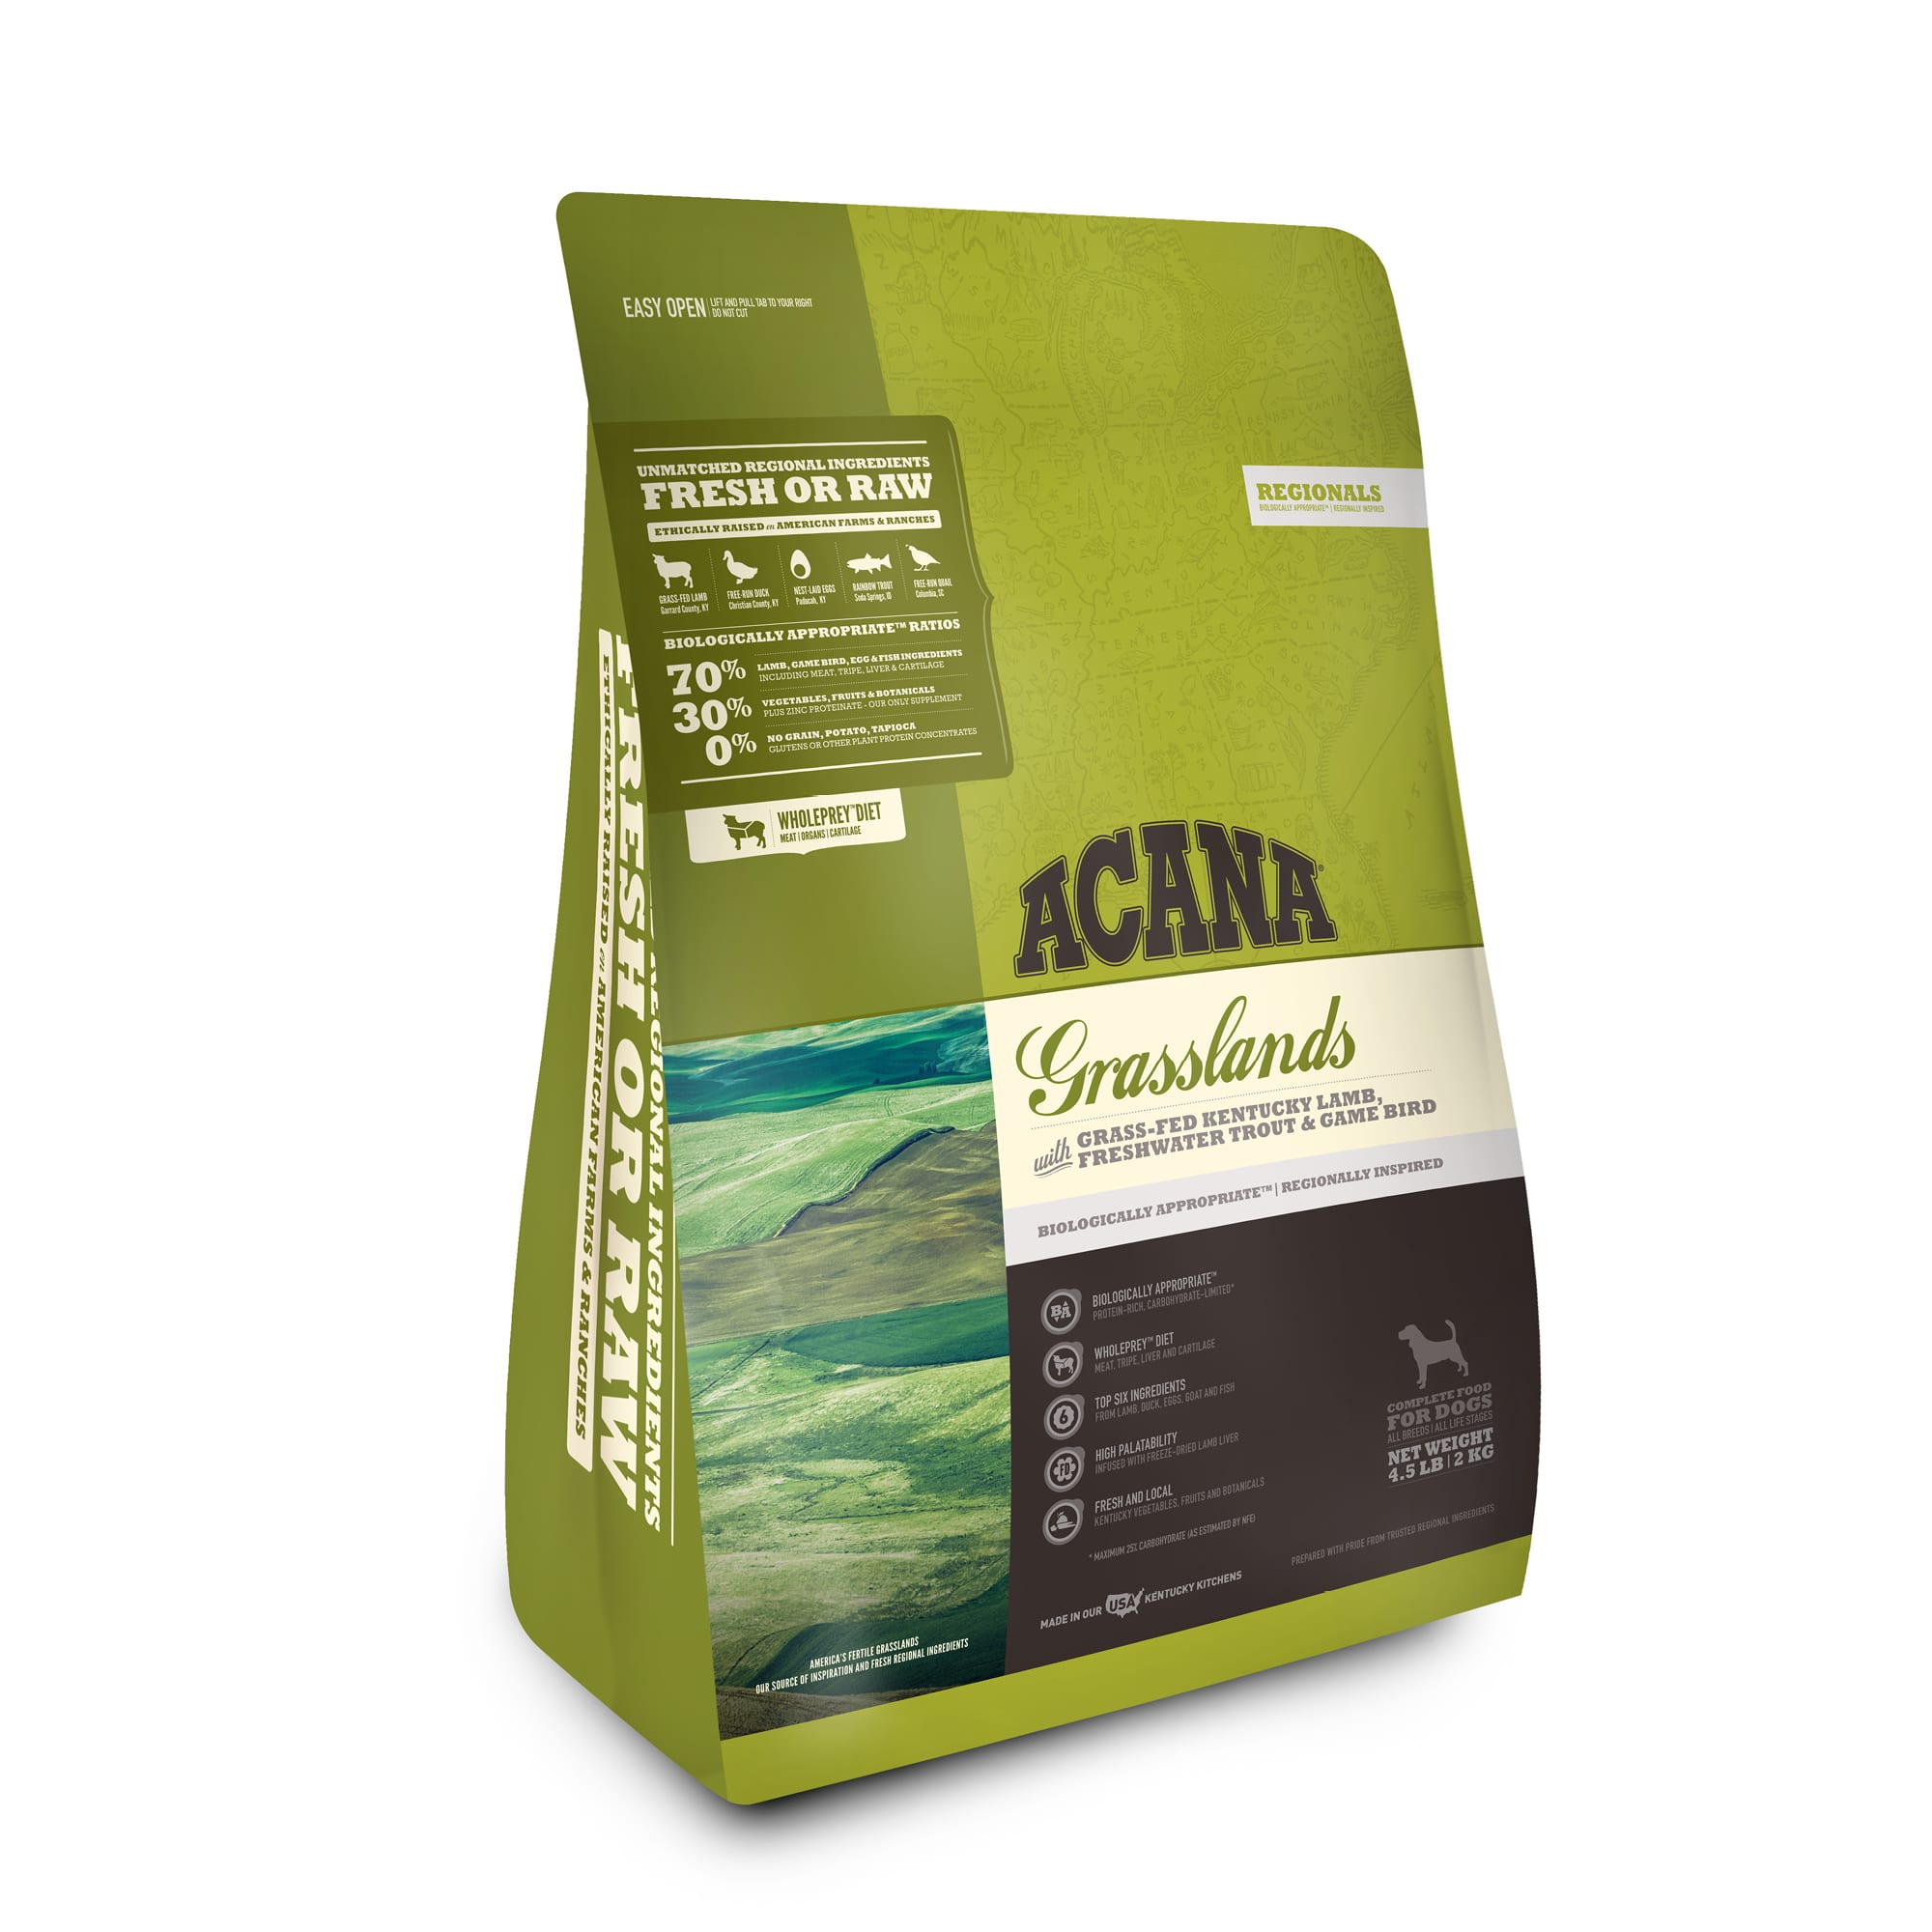 ACANA Grasslands Grain Free High Protein Freeze-Dried Coated Lamb Duck Trout and Quail Dry Dog Food, 4.5 lbs.